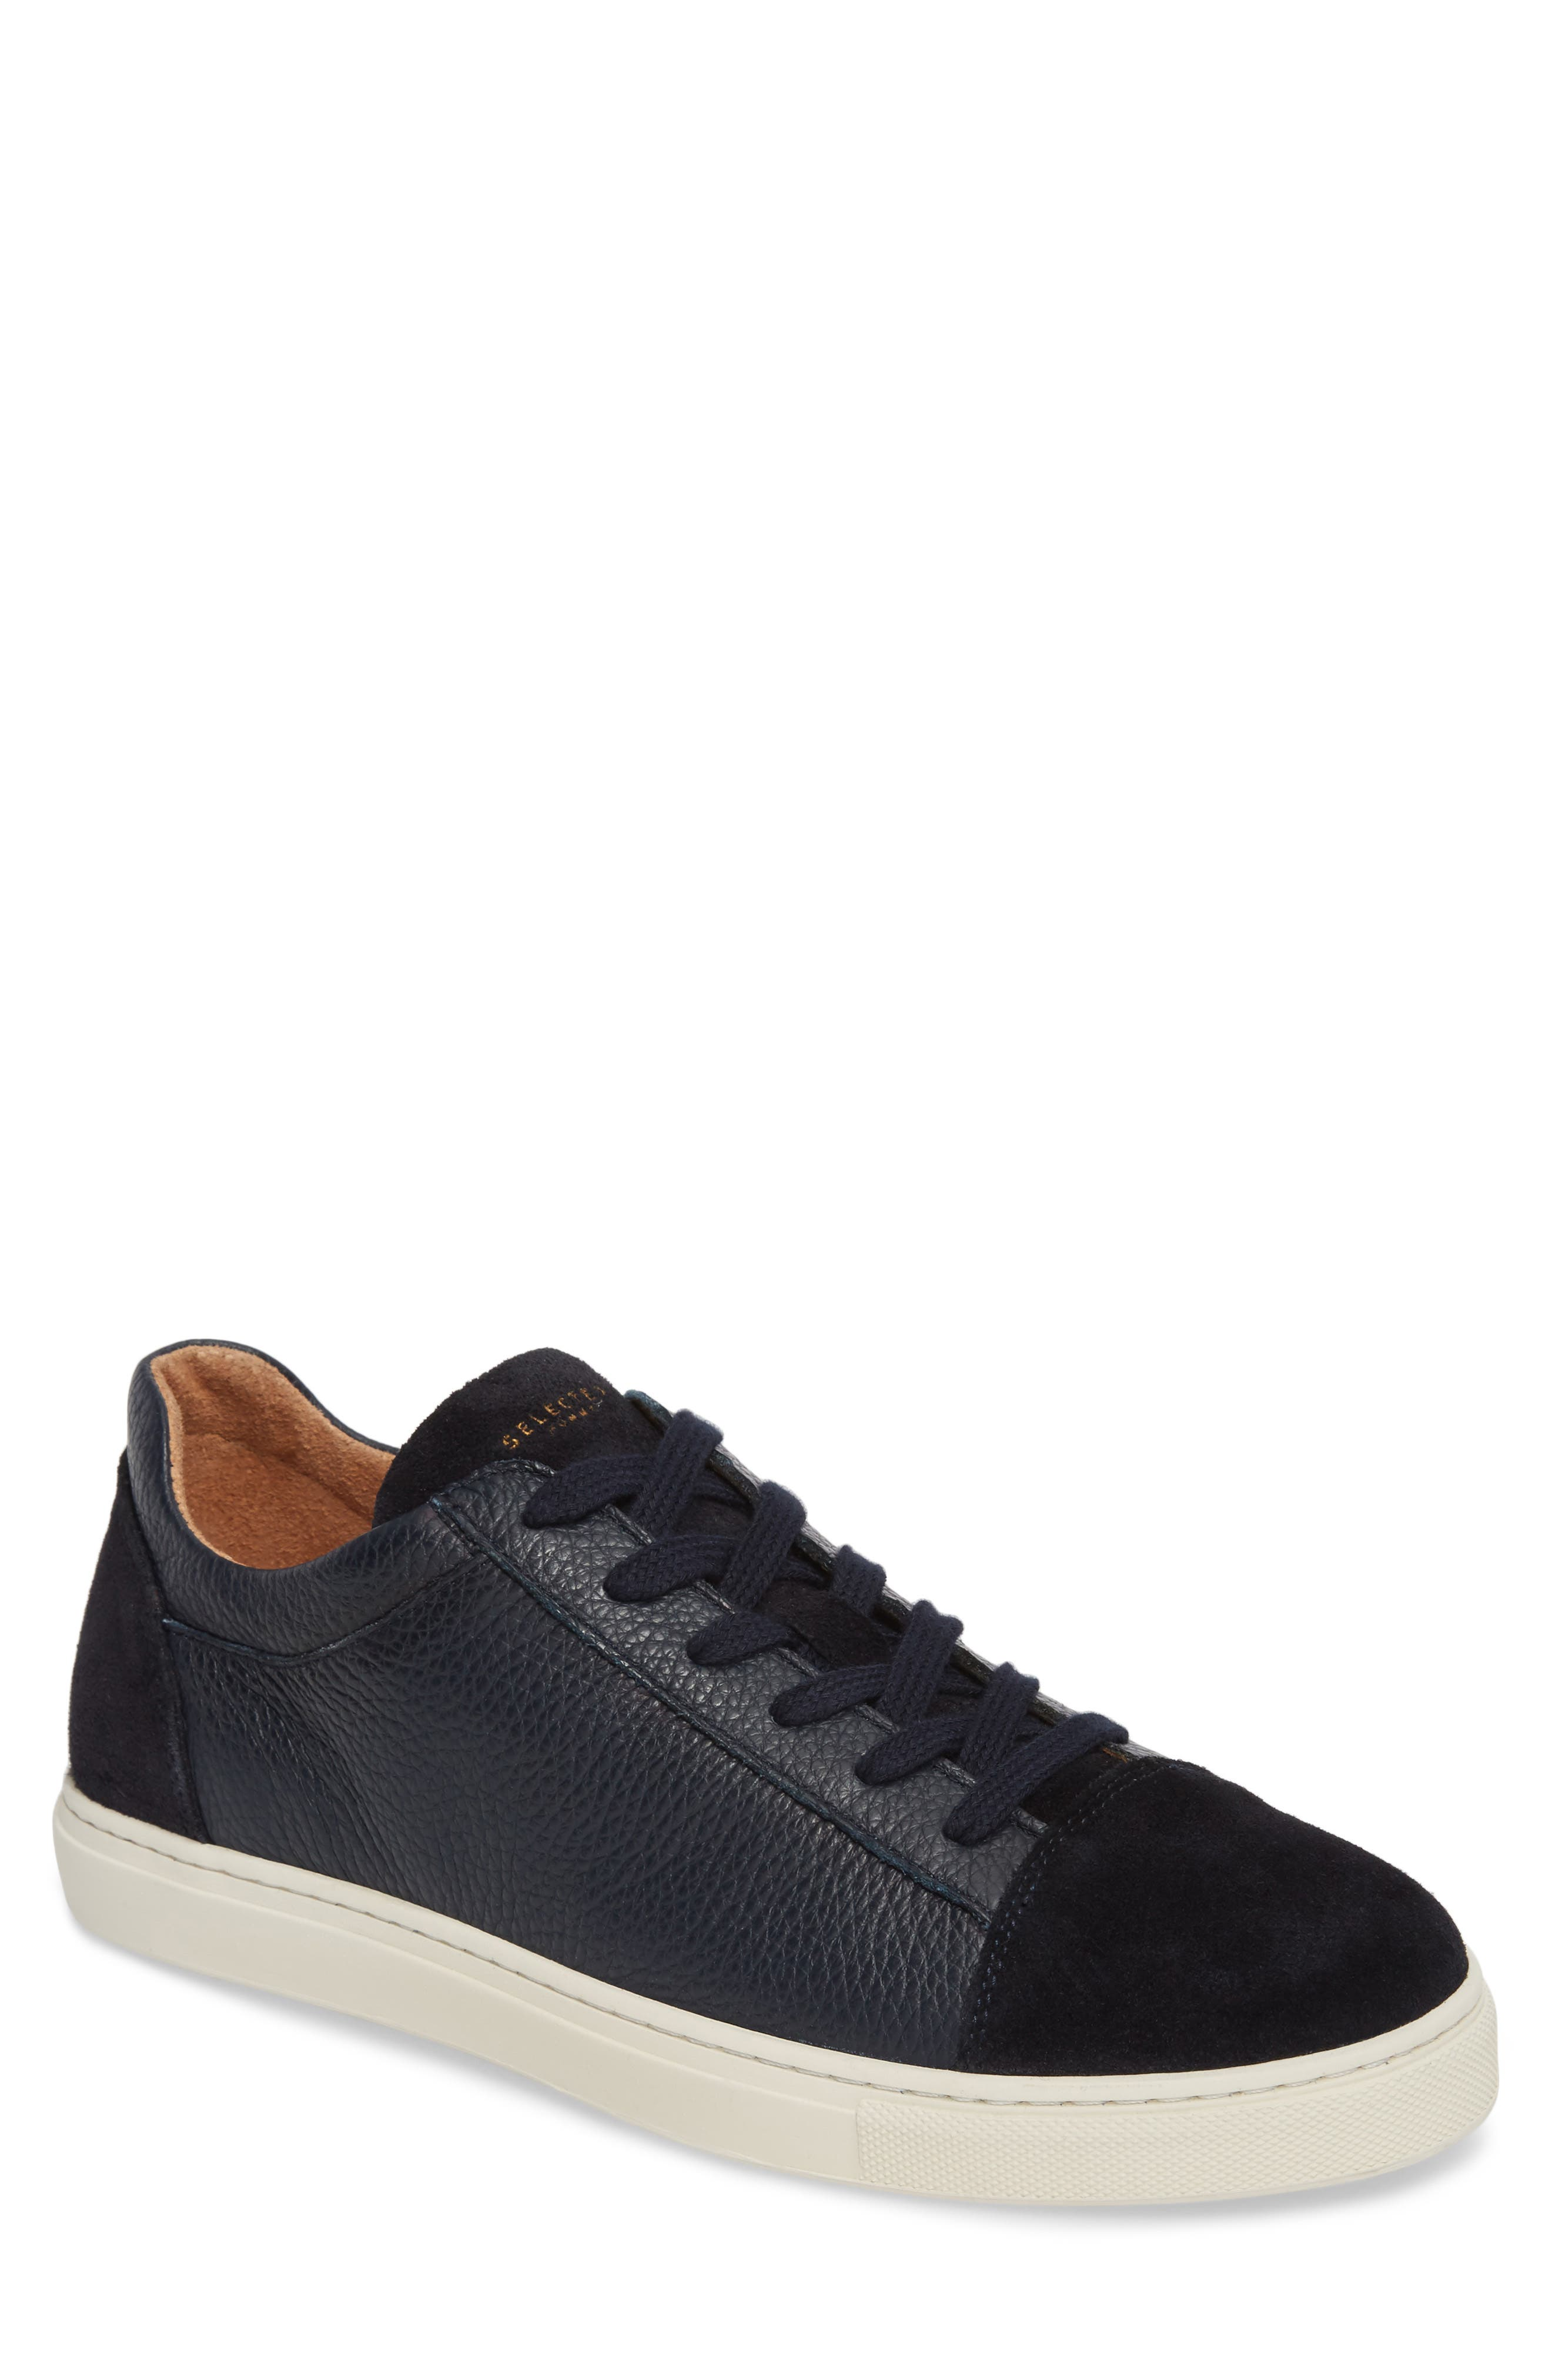 Selected Homme David Cap Toe Sneaker - Blue